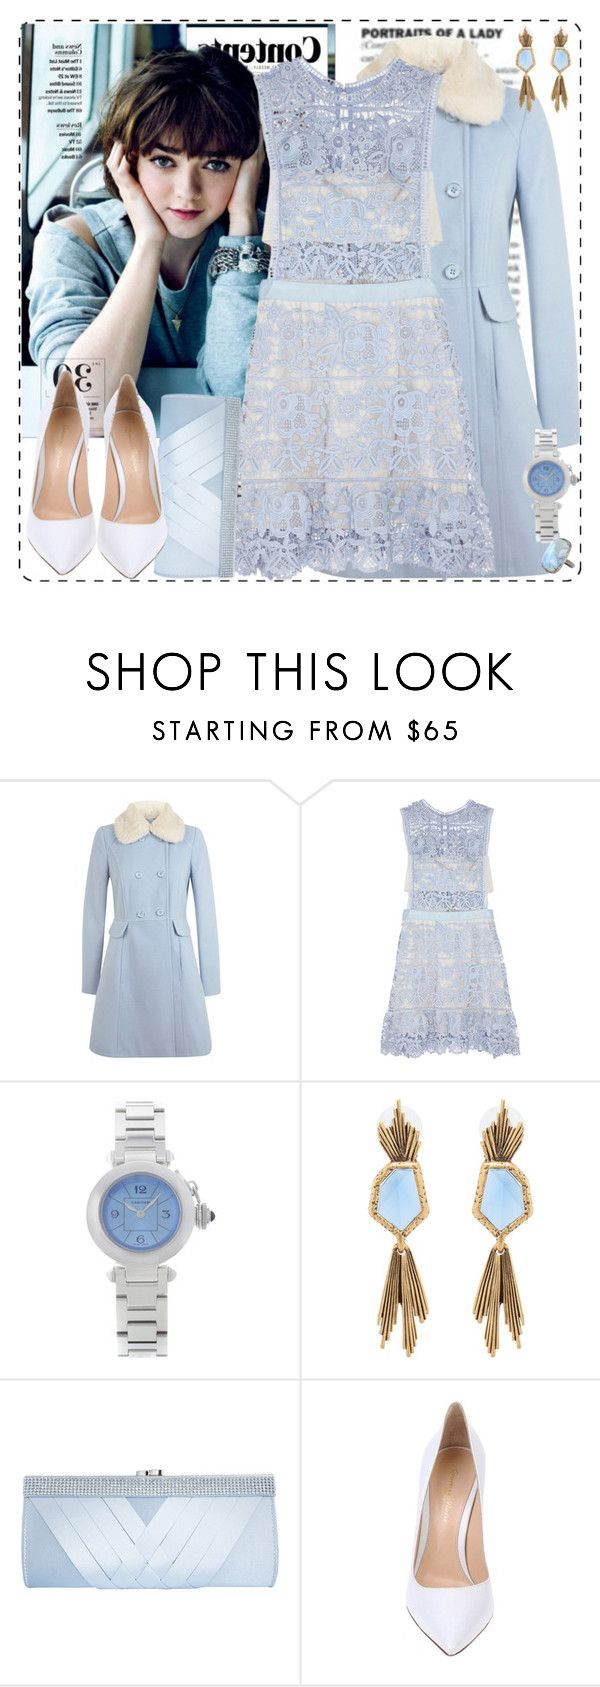 """""""Jenny 11.01"""" by coraline-marie ❤ liked on Polyvore featuring Miss Selfridge, self-portrait, Cartier, Oscar de la Renta, GCGme, Gianvito Rossi and ADORNIA"""